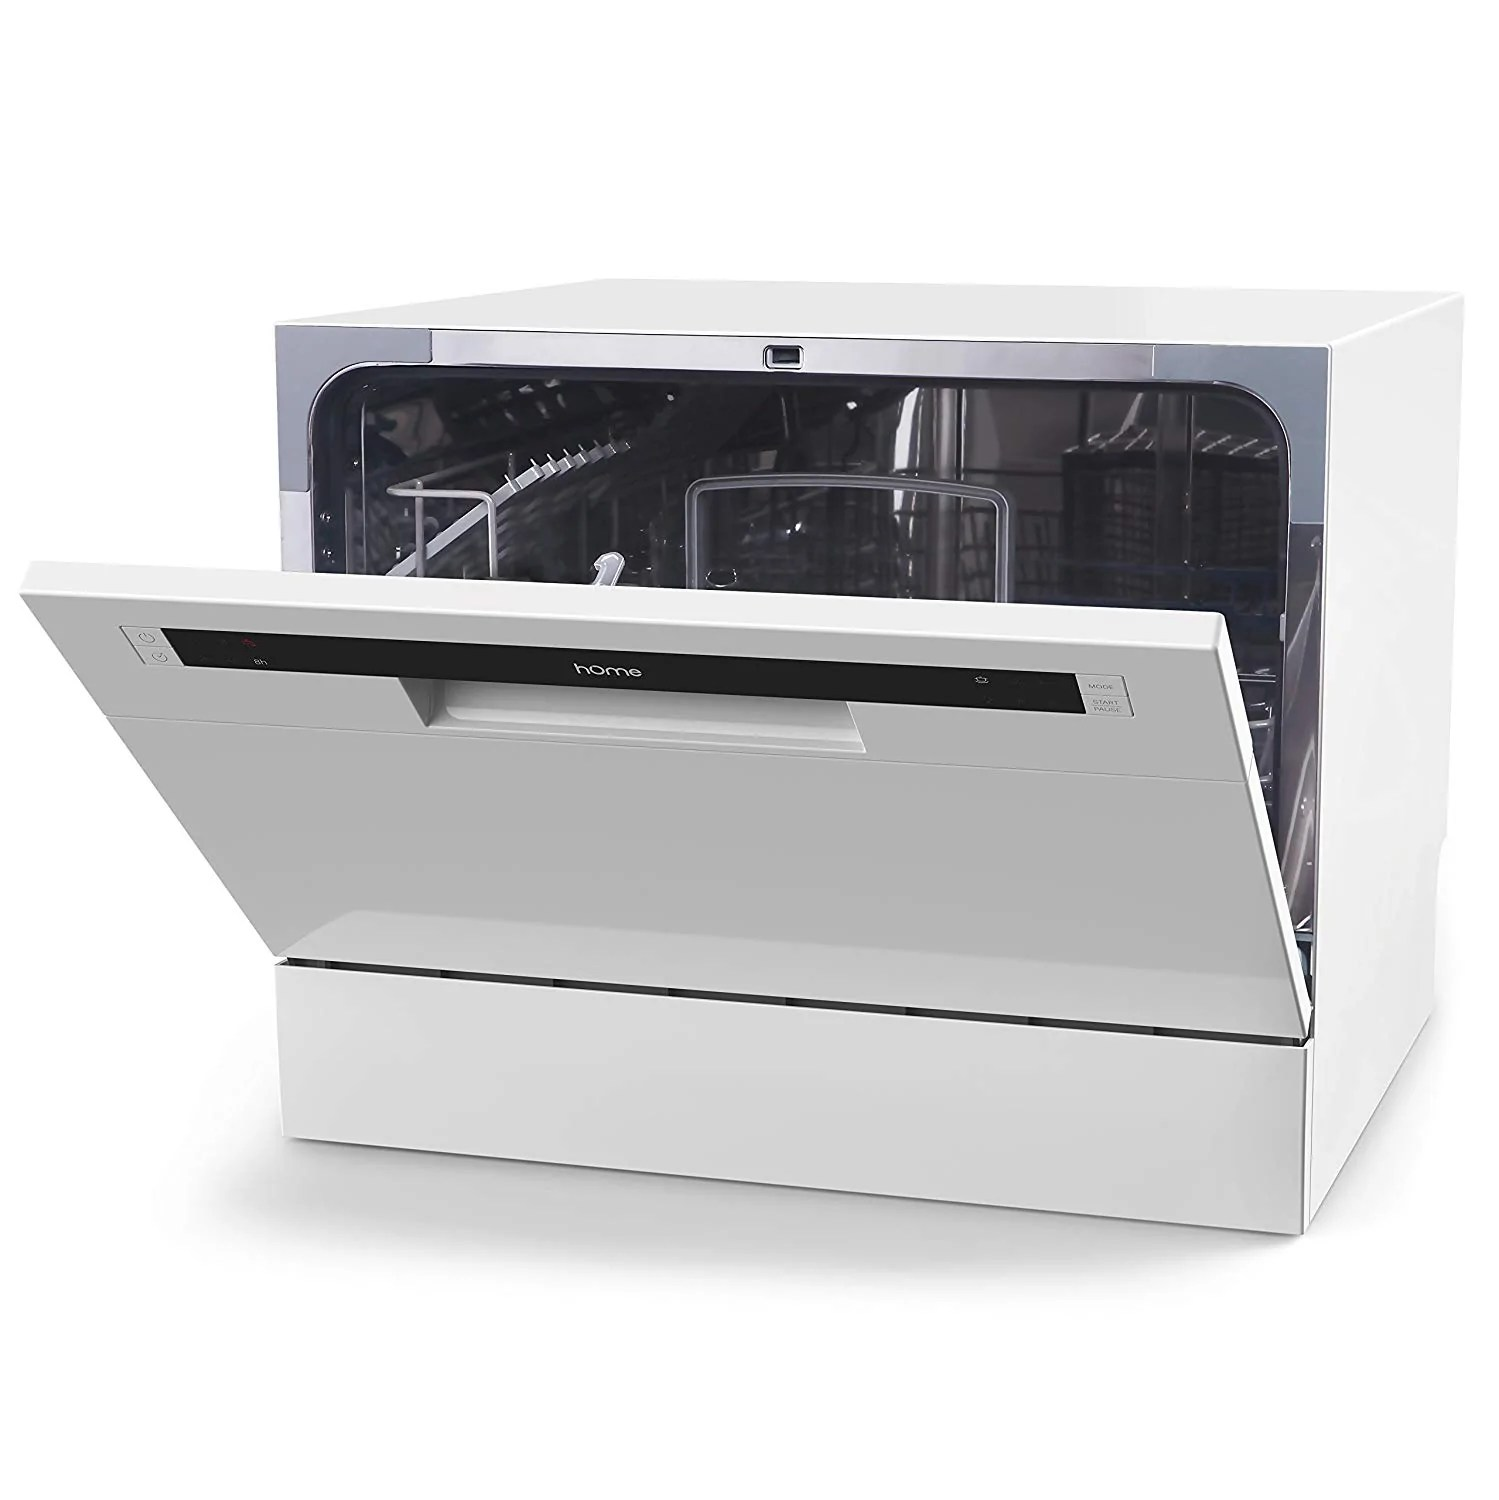 Countertop Glass Washer Compact Countertop Dishwasher Home